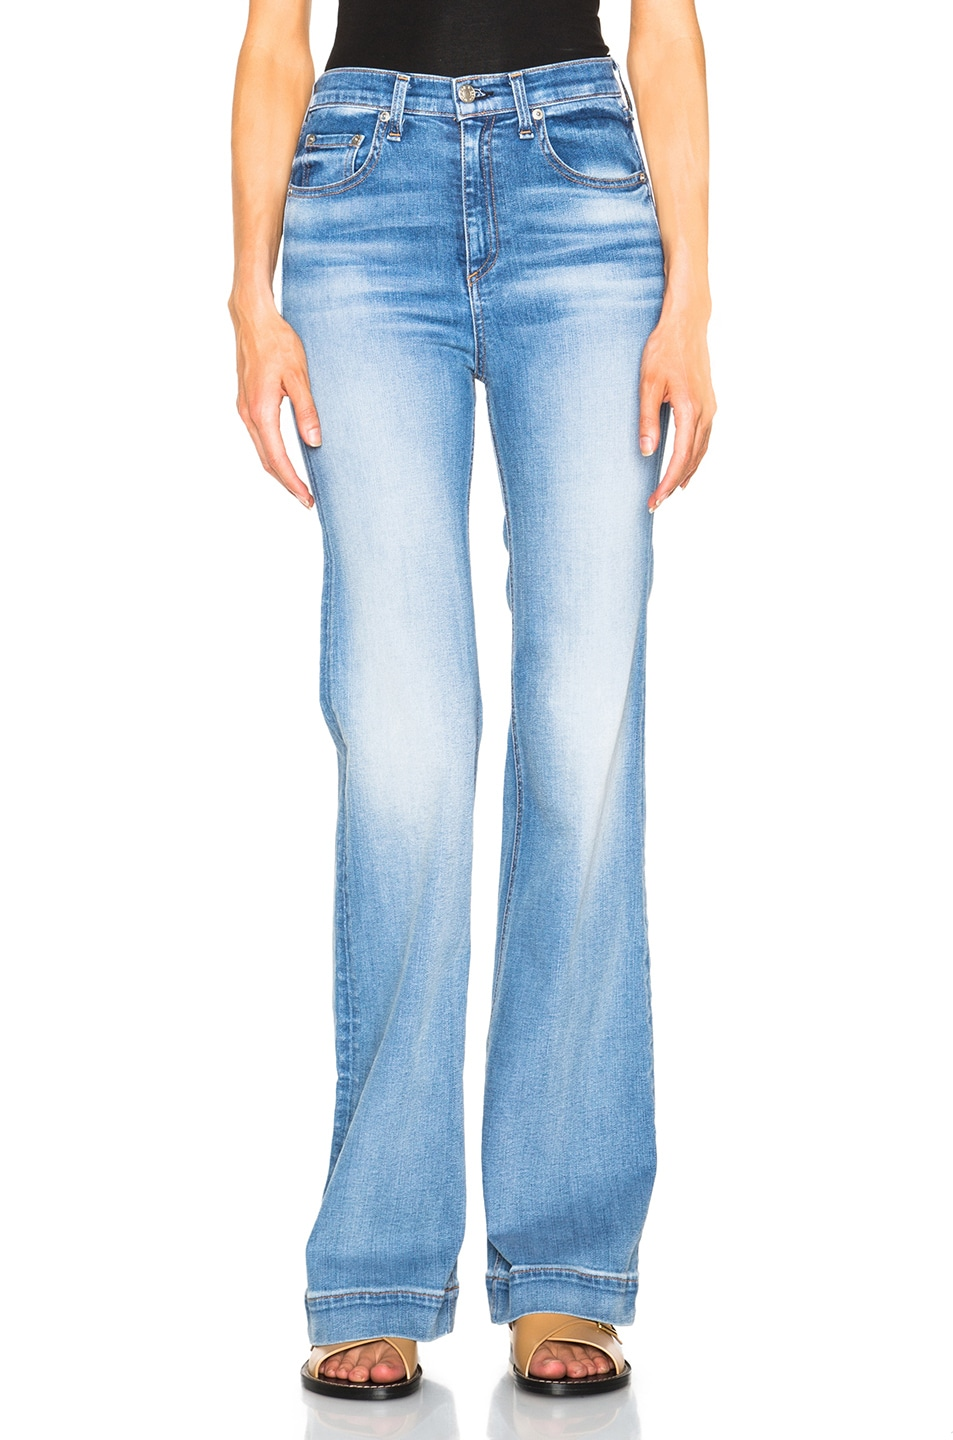 febd7783b6fe4 Image 1 of rag   bone JEAN Justine Wide Leg in Arsenal